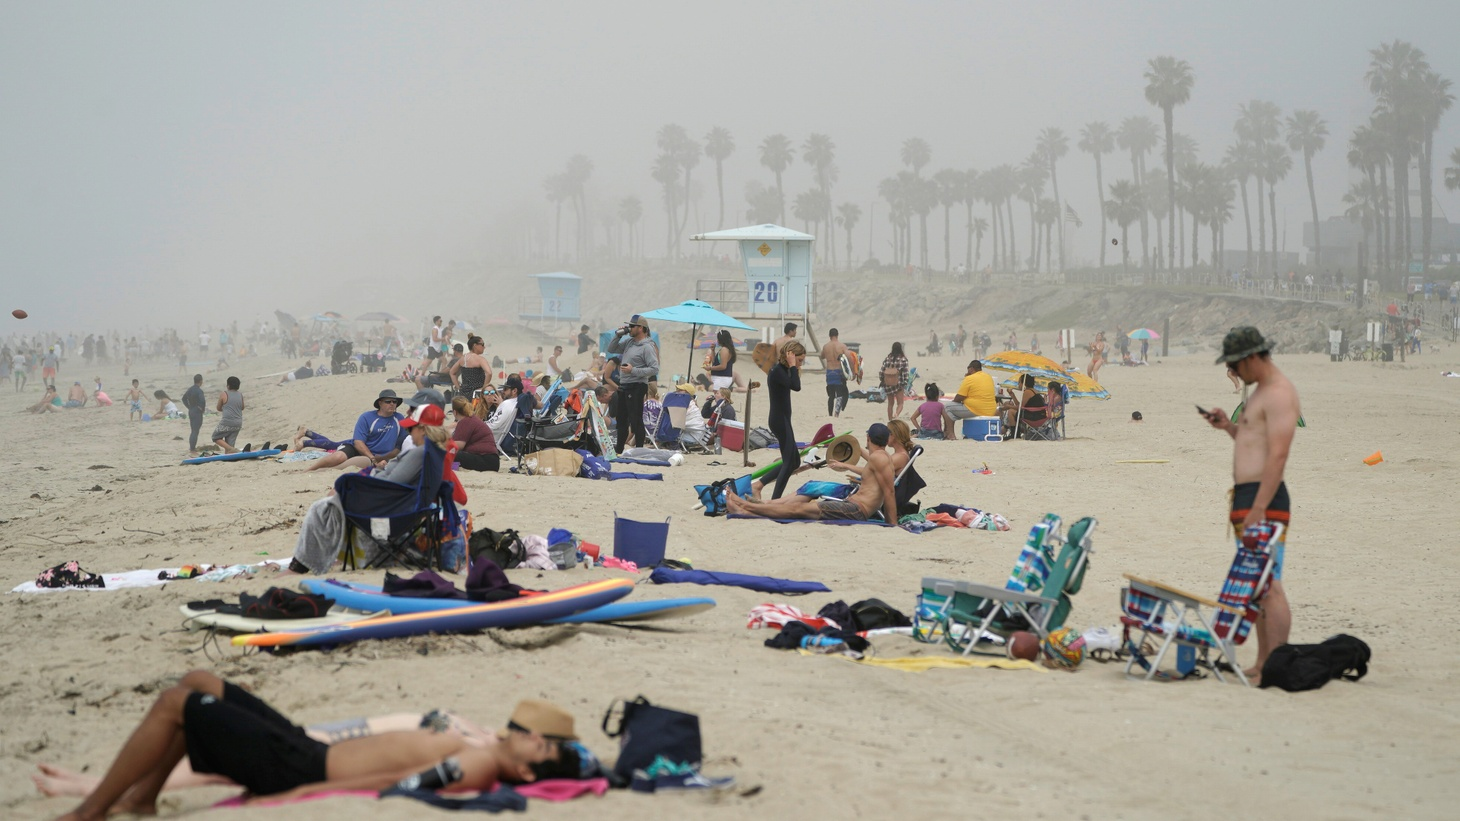 People sit in groups at Huntington City Beach, California, during the outbreak of the coronavirus disease (COVID-19), April 25, 2020.